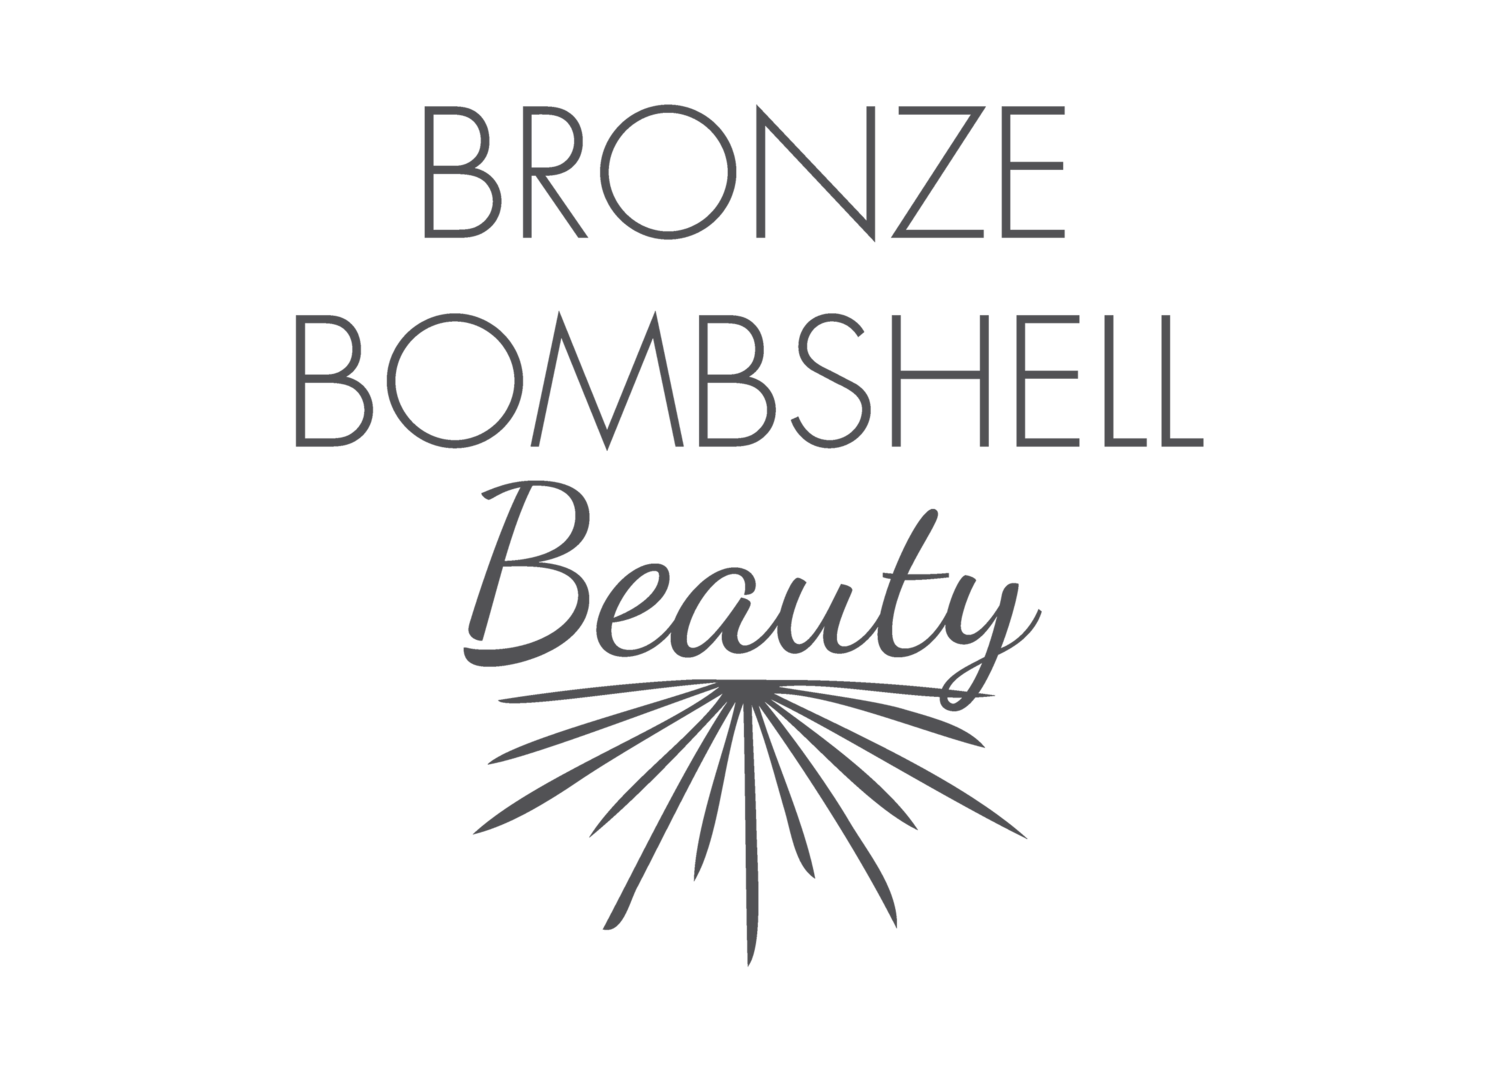 Bronze Bombshell Beauty